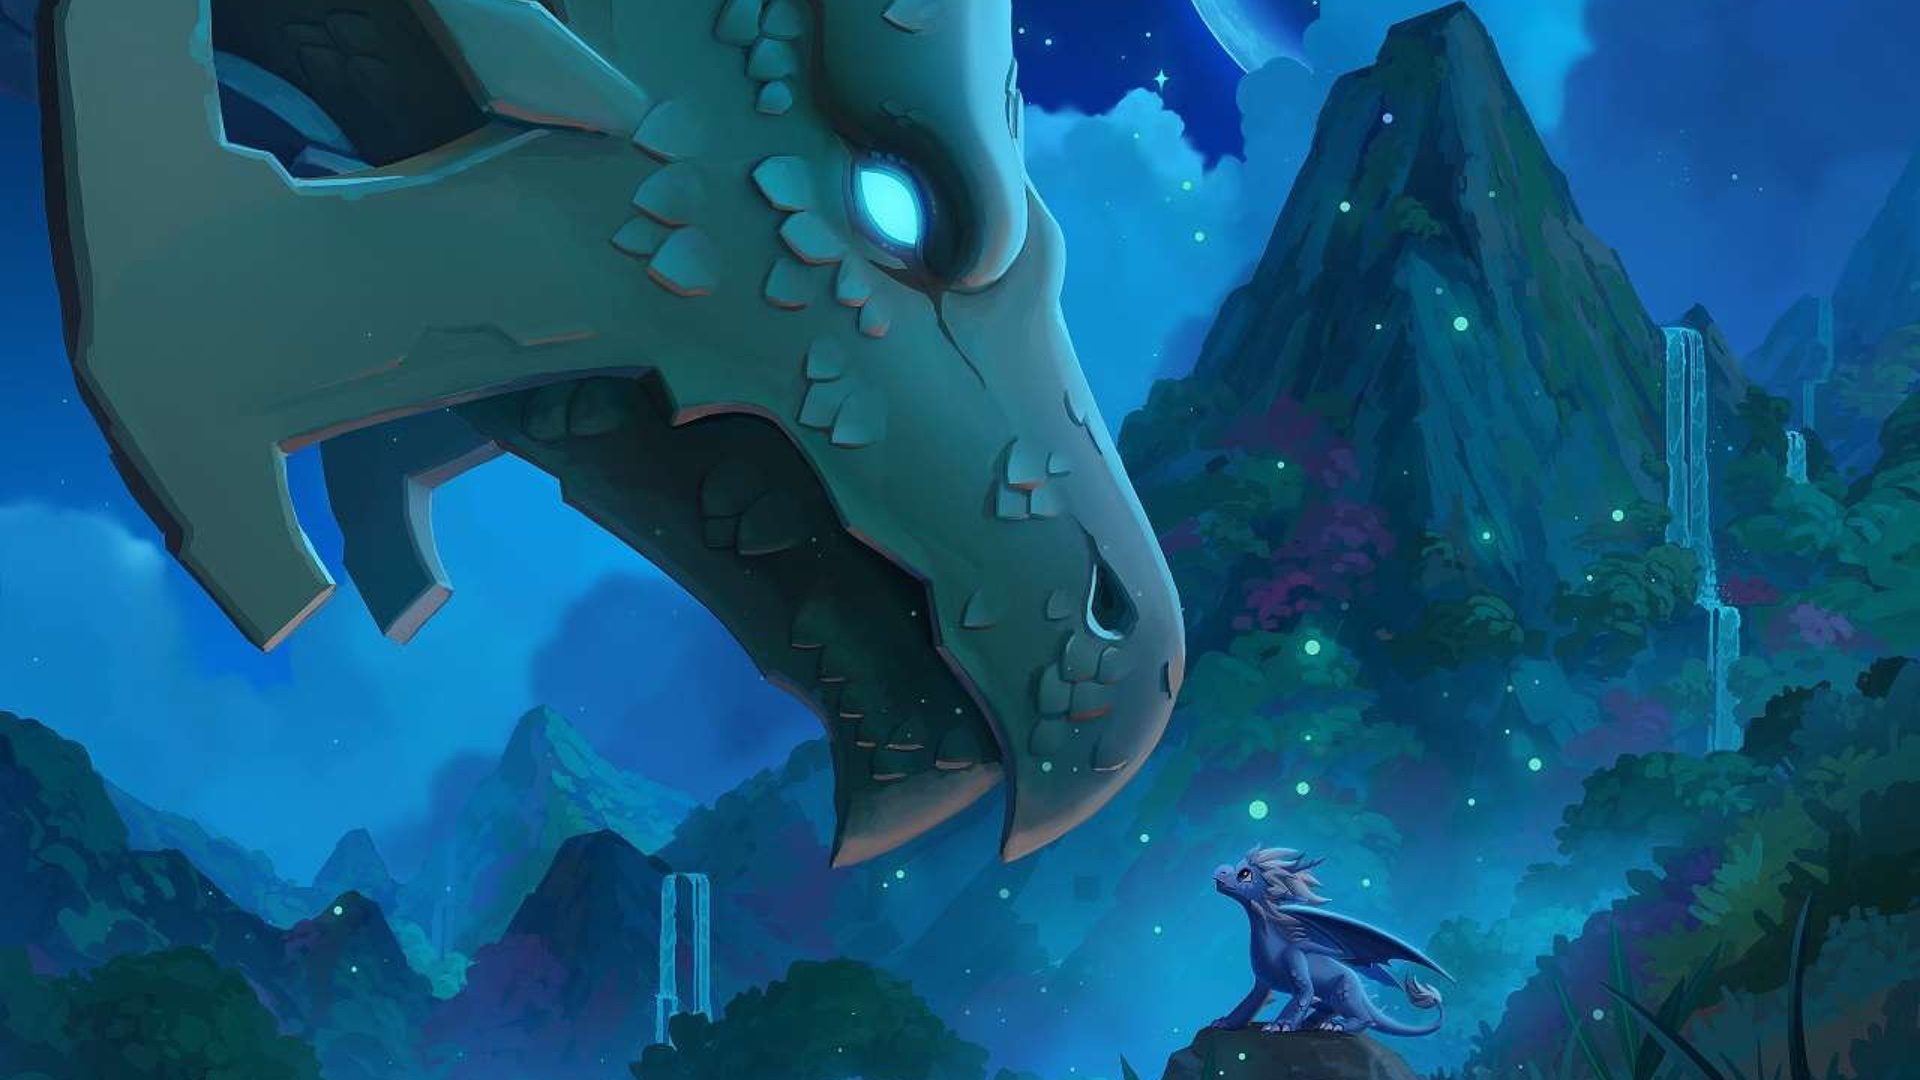 The Dragon Prince free background